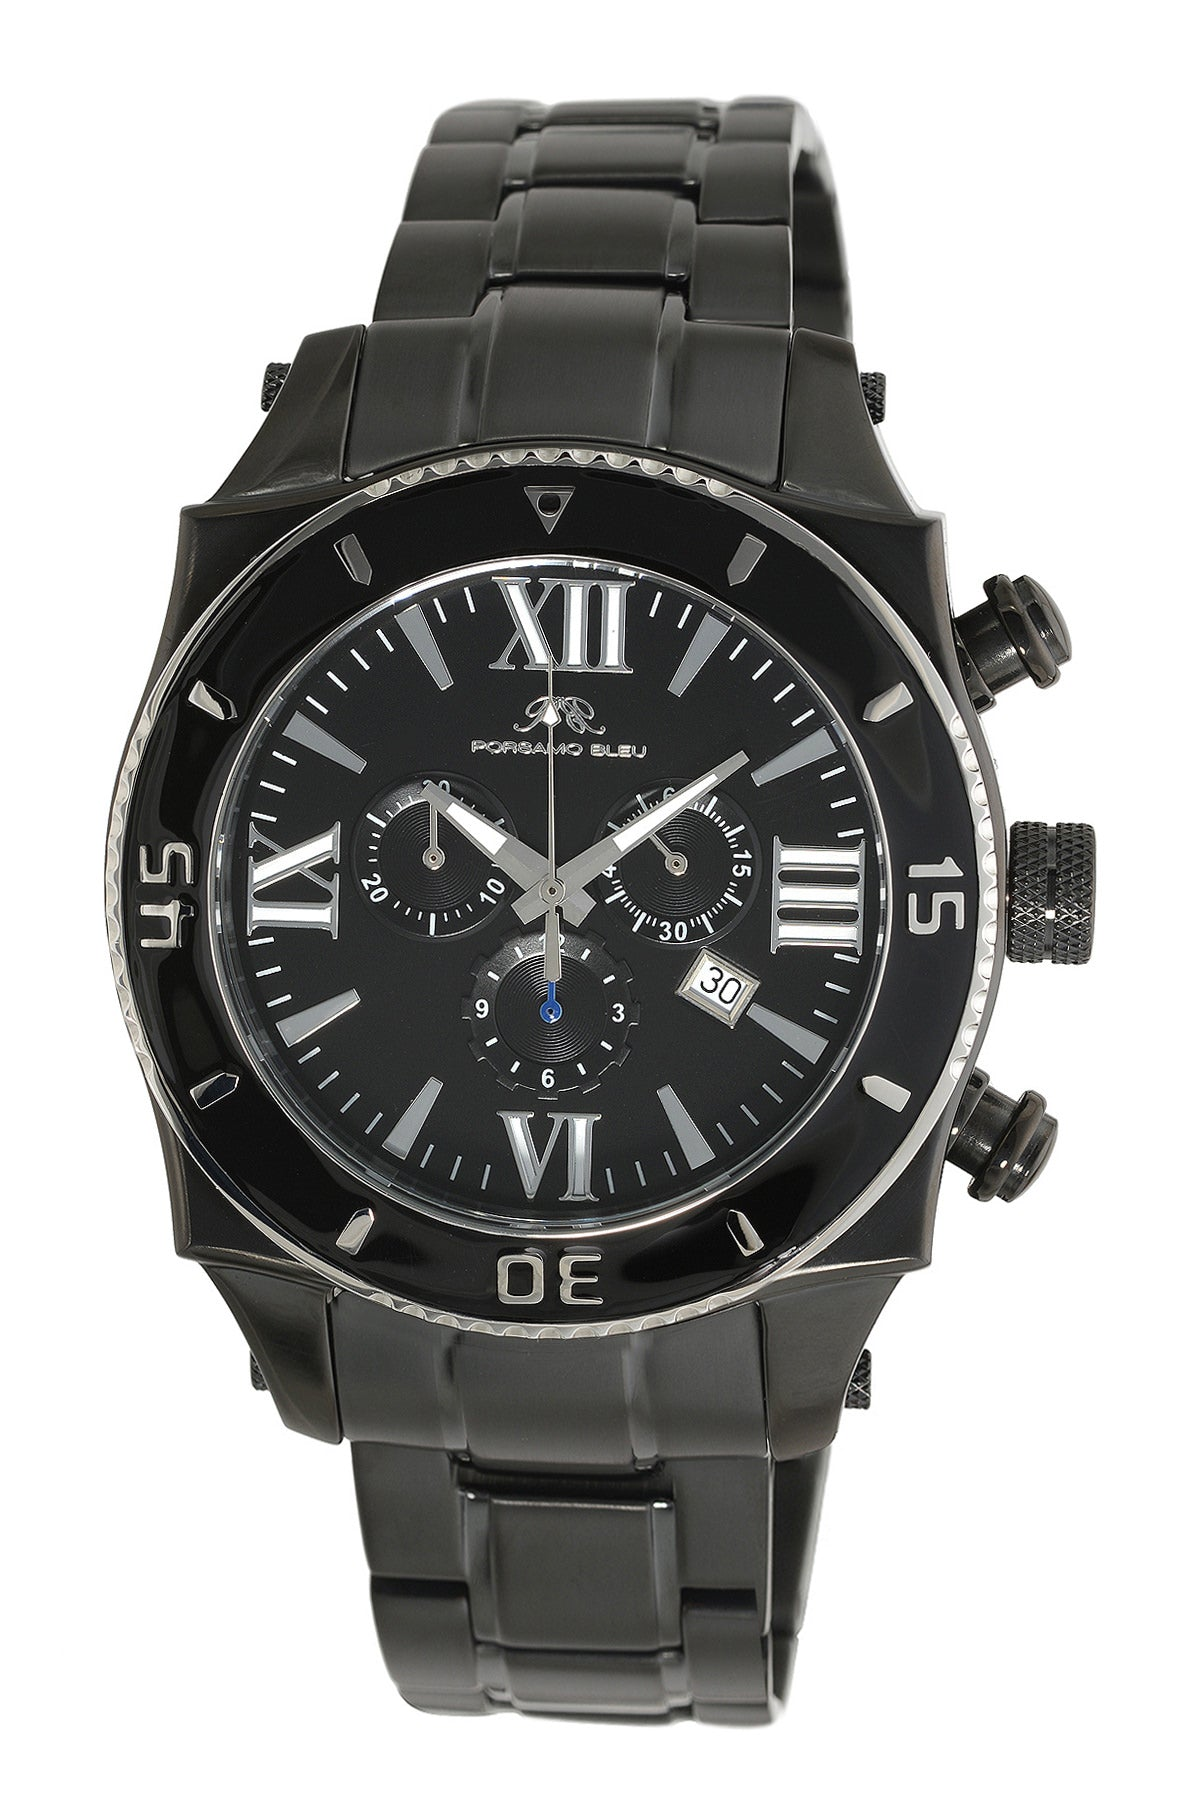 Porsamo Bleu Milan G luxury chronograph men's stainless steel watch, black 071BMIS